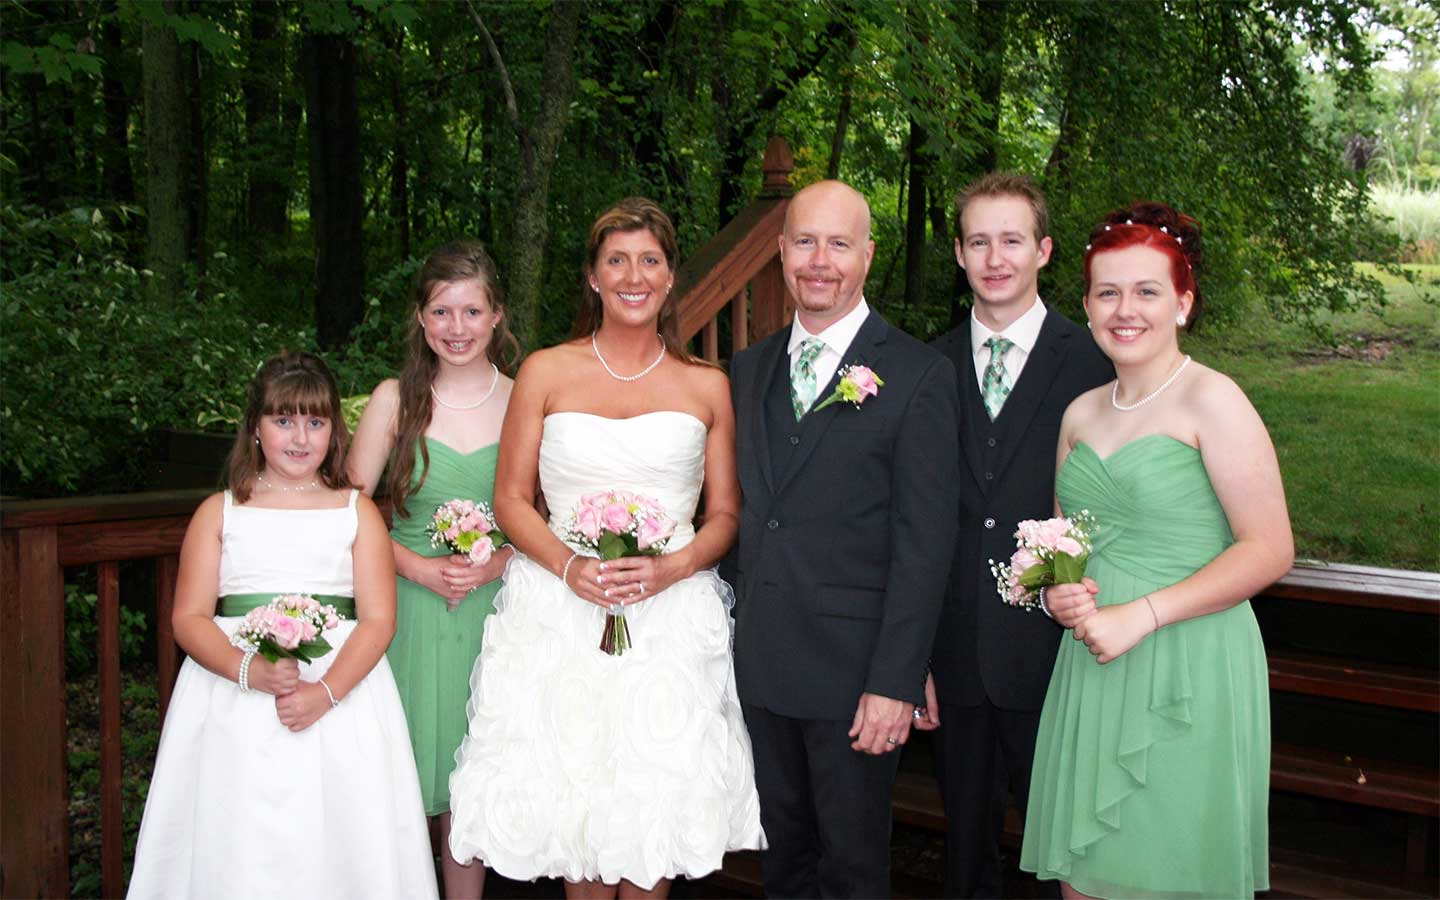 Bridal party at our destination wedding location in Michigan